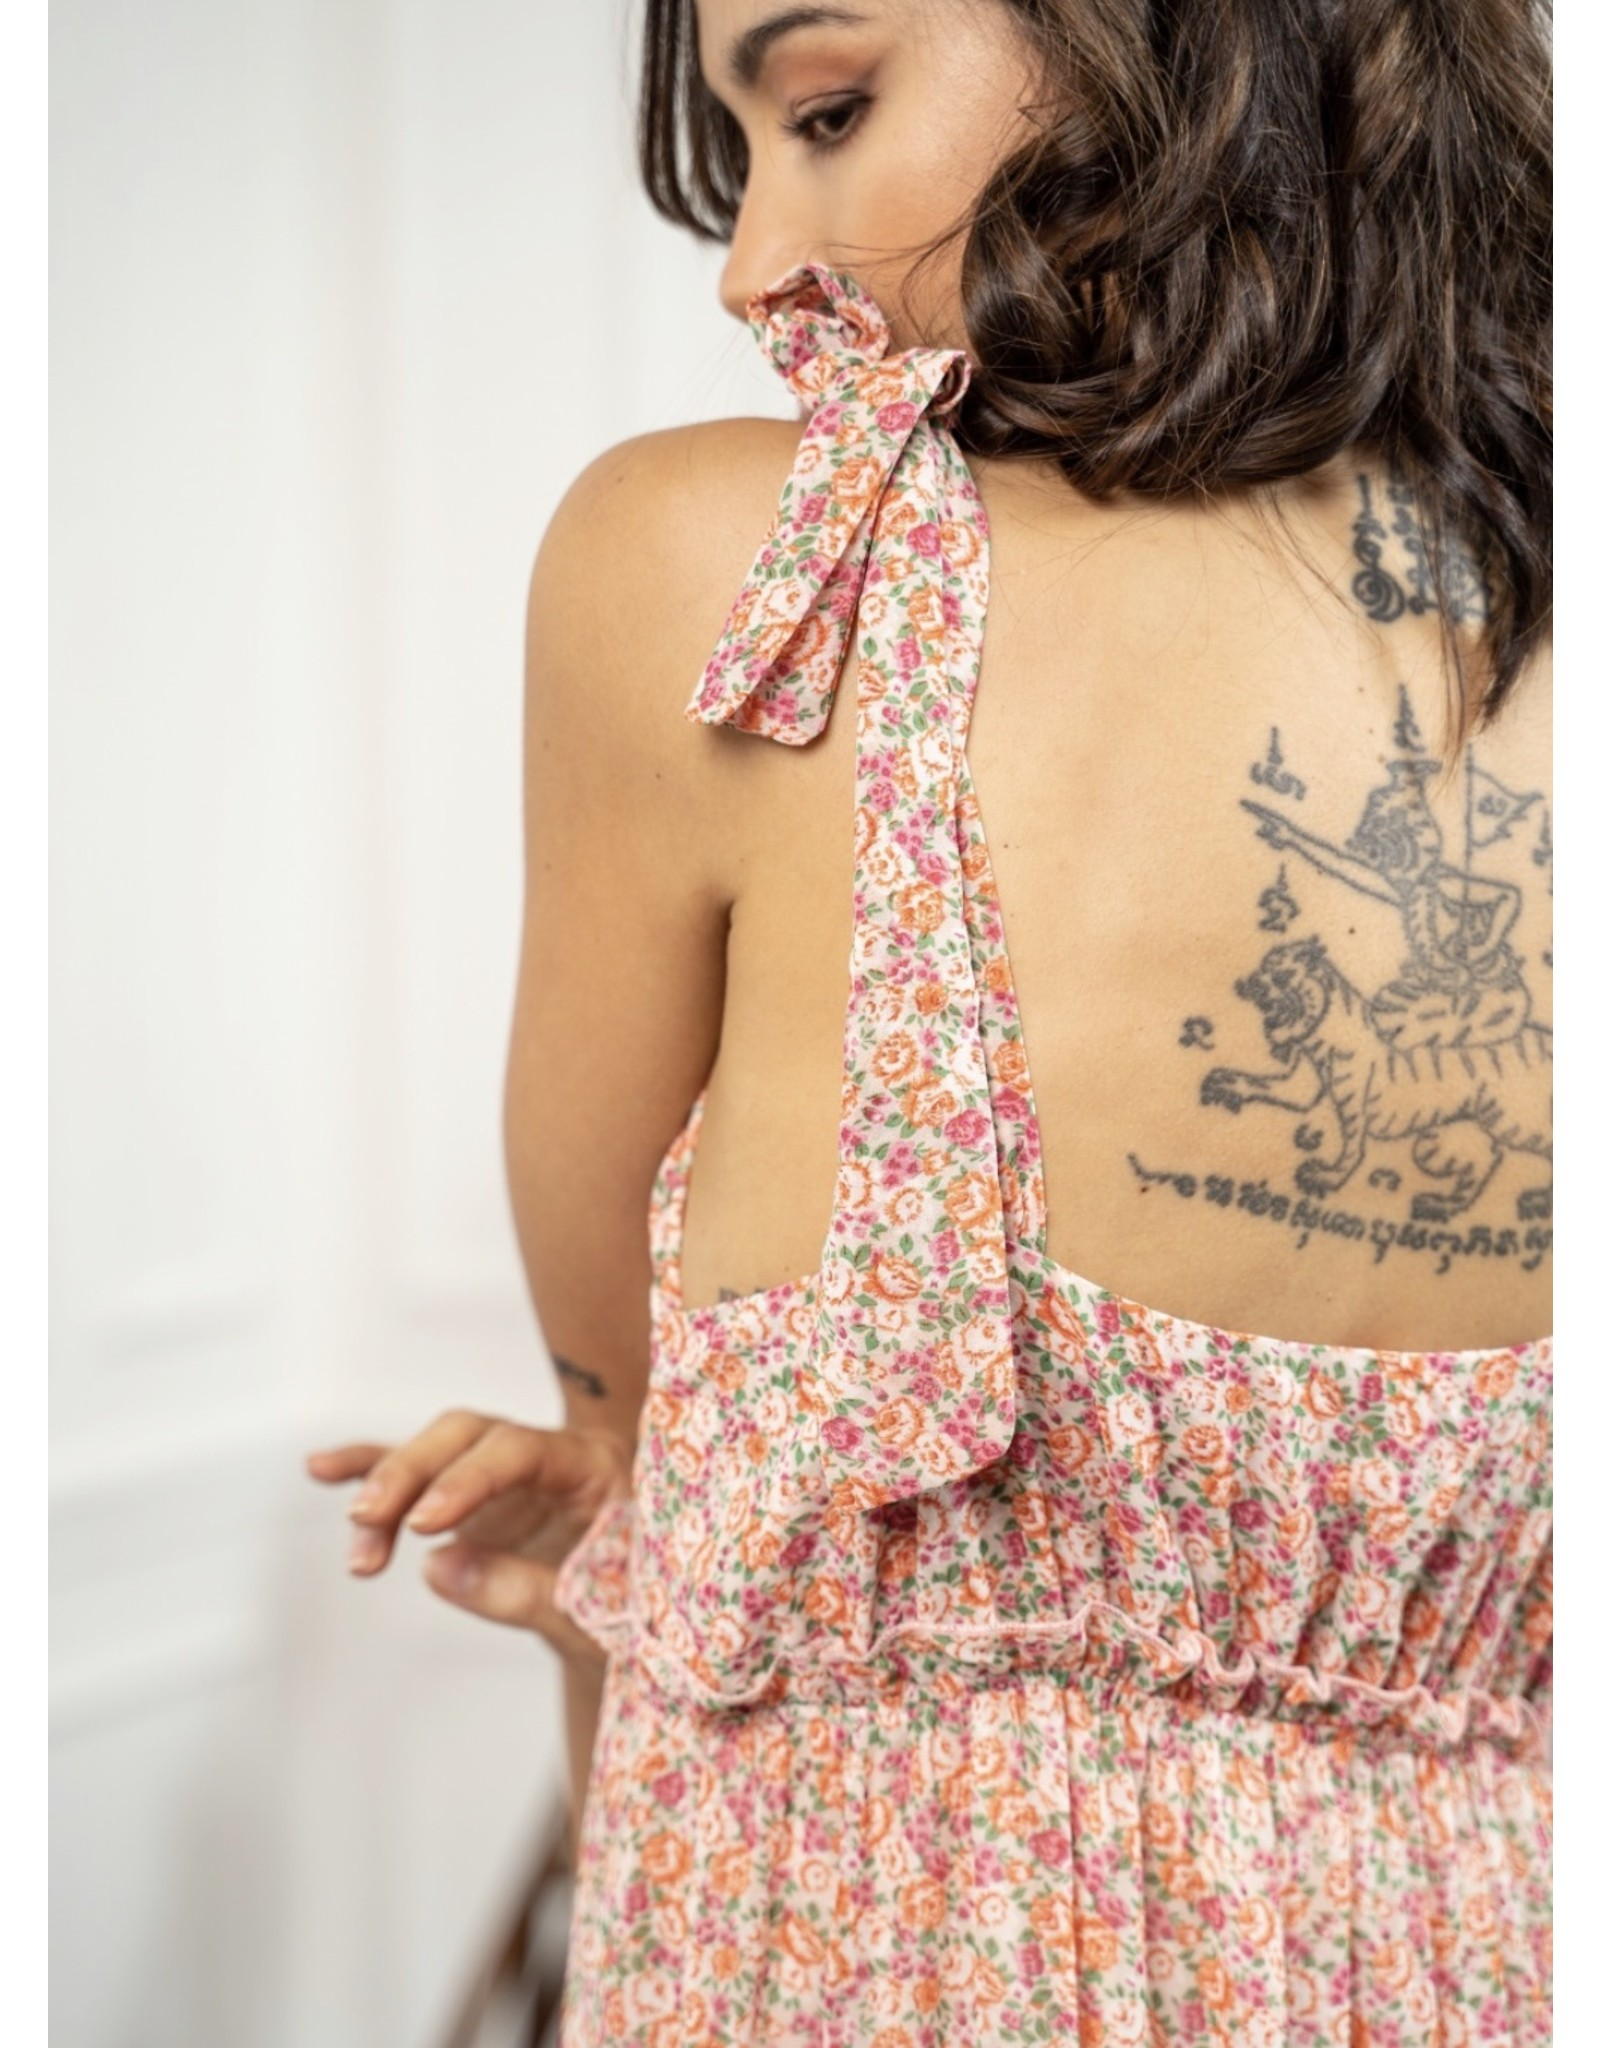 Kilky Rosé Flower Dress